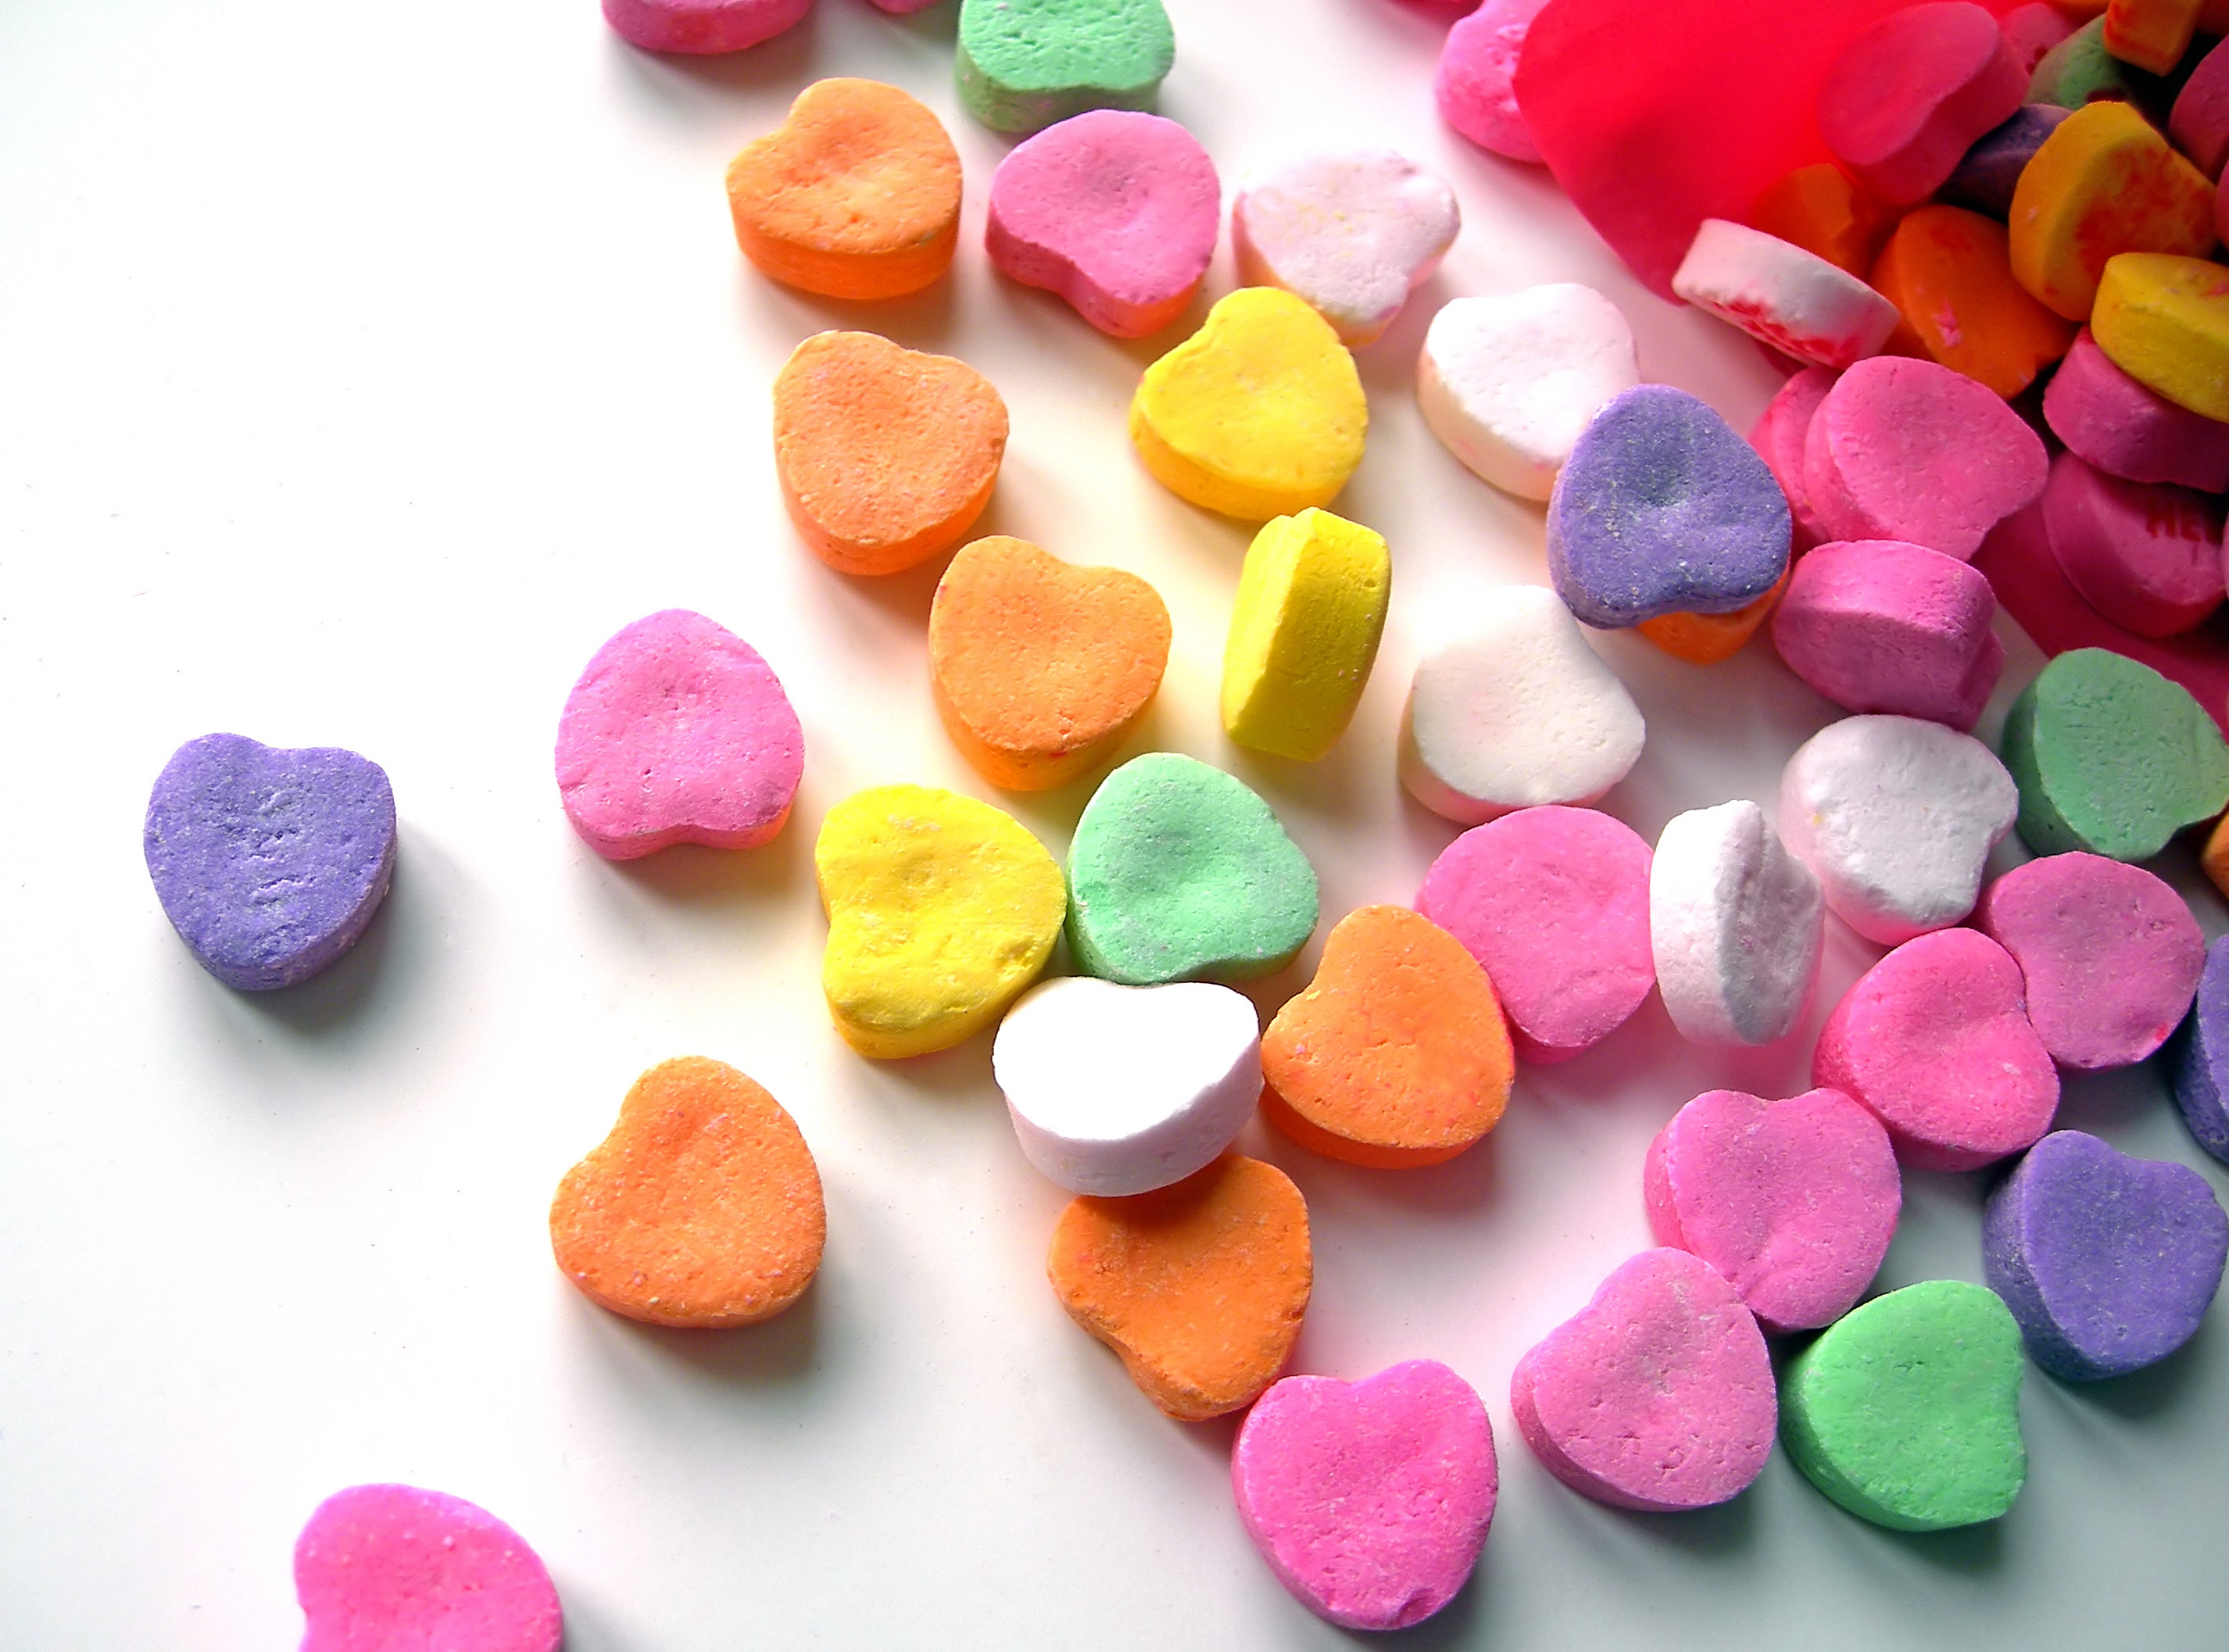 Kim-colorful_candy_hearts1